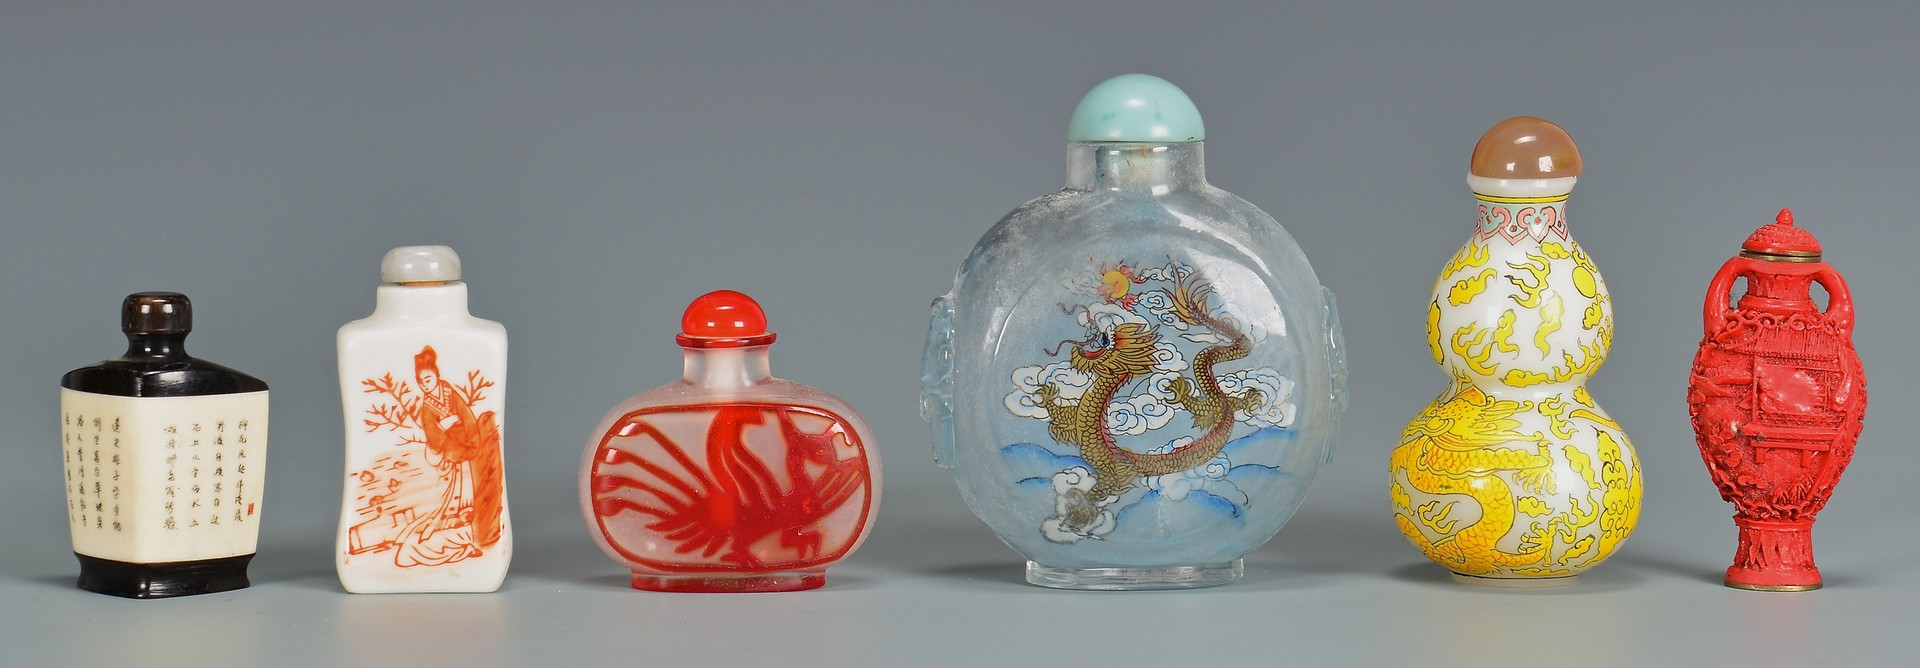 Lot 768: Misc. Asian Porcelain & Snuff Bottles